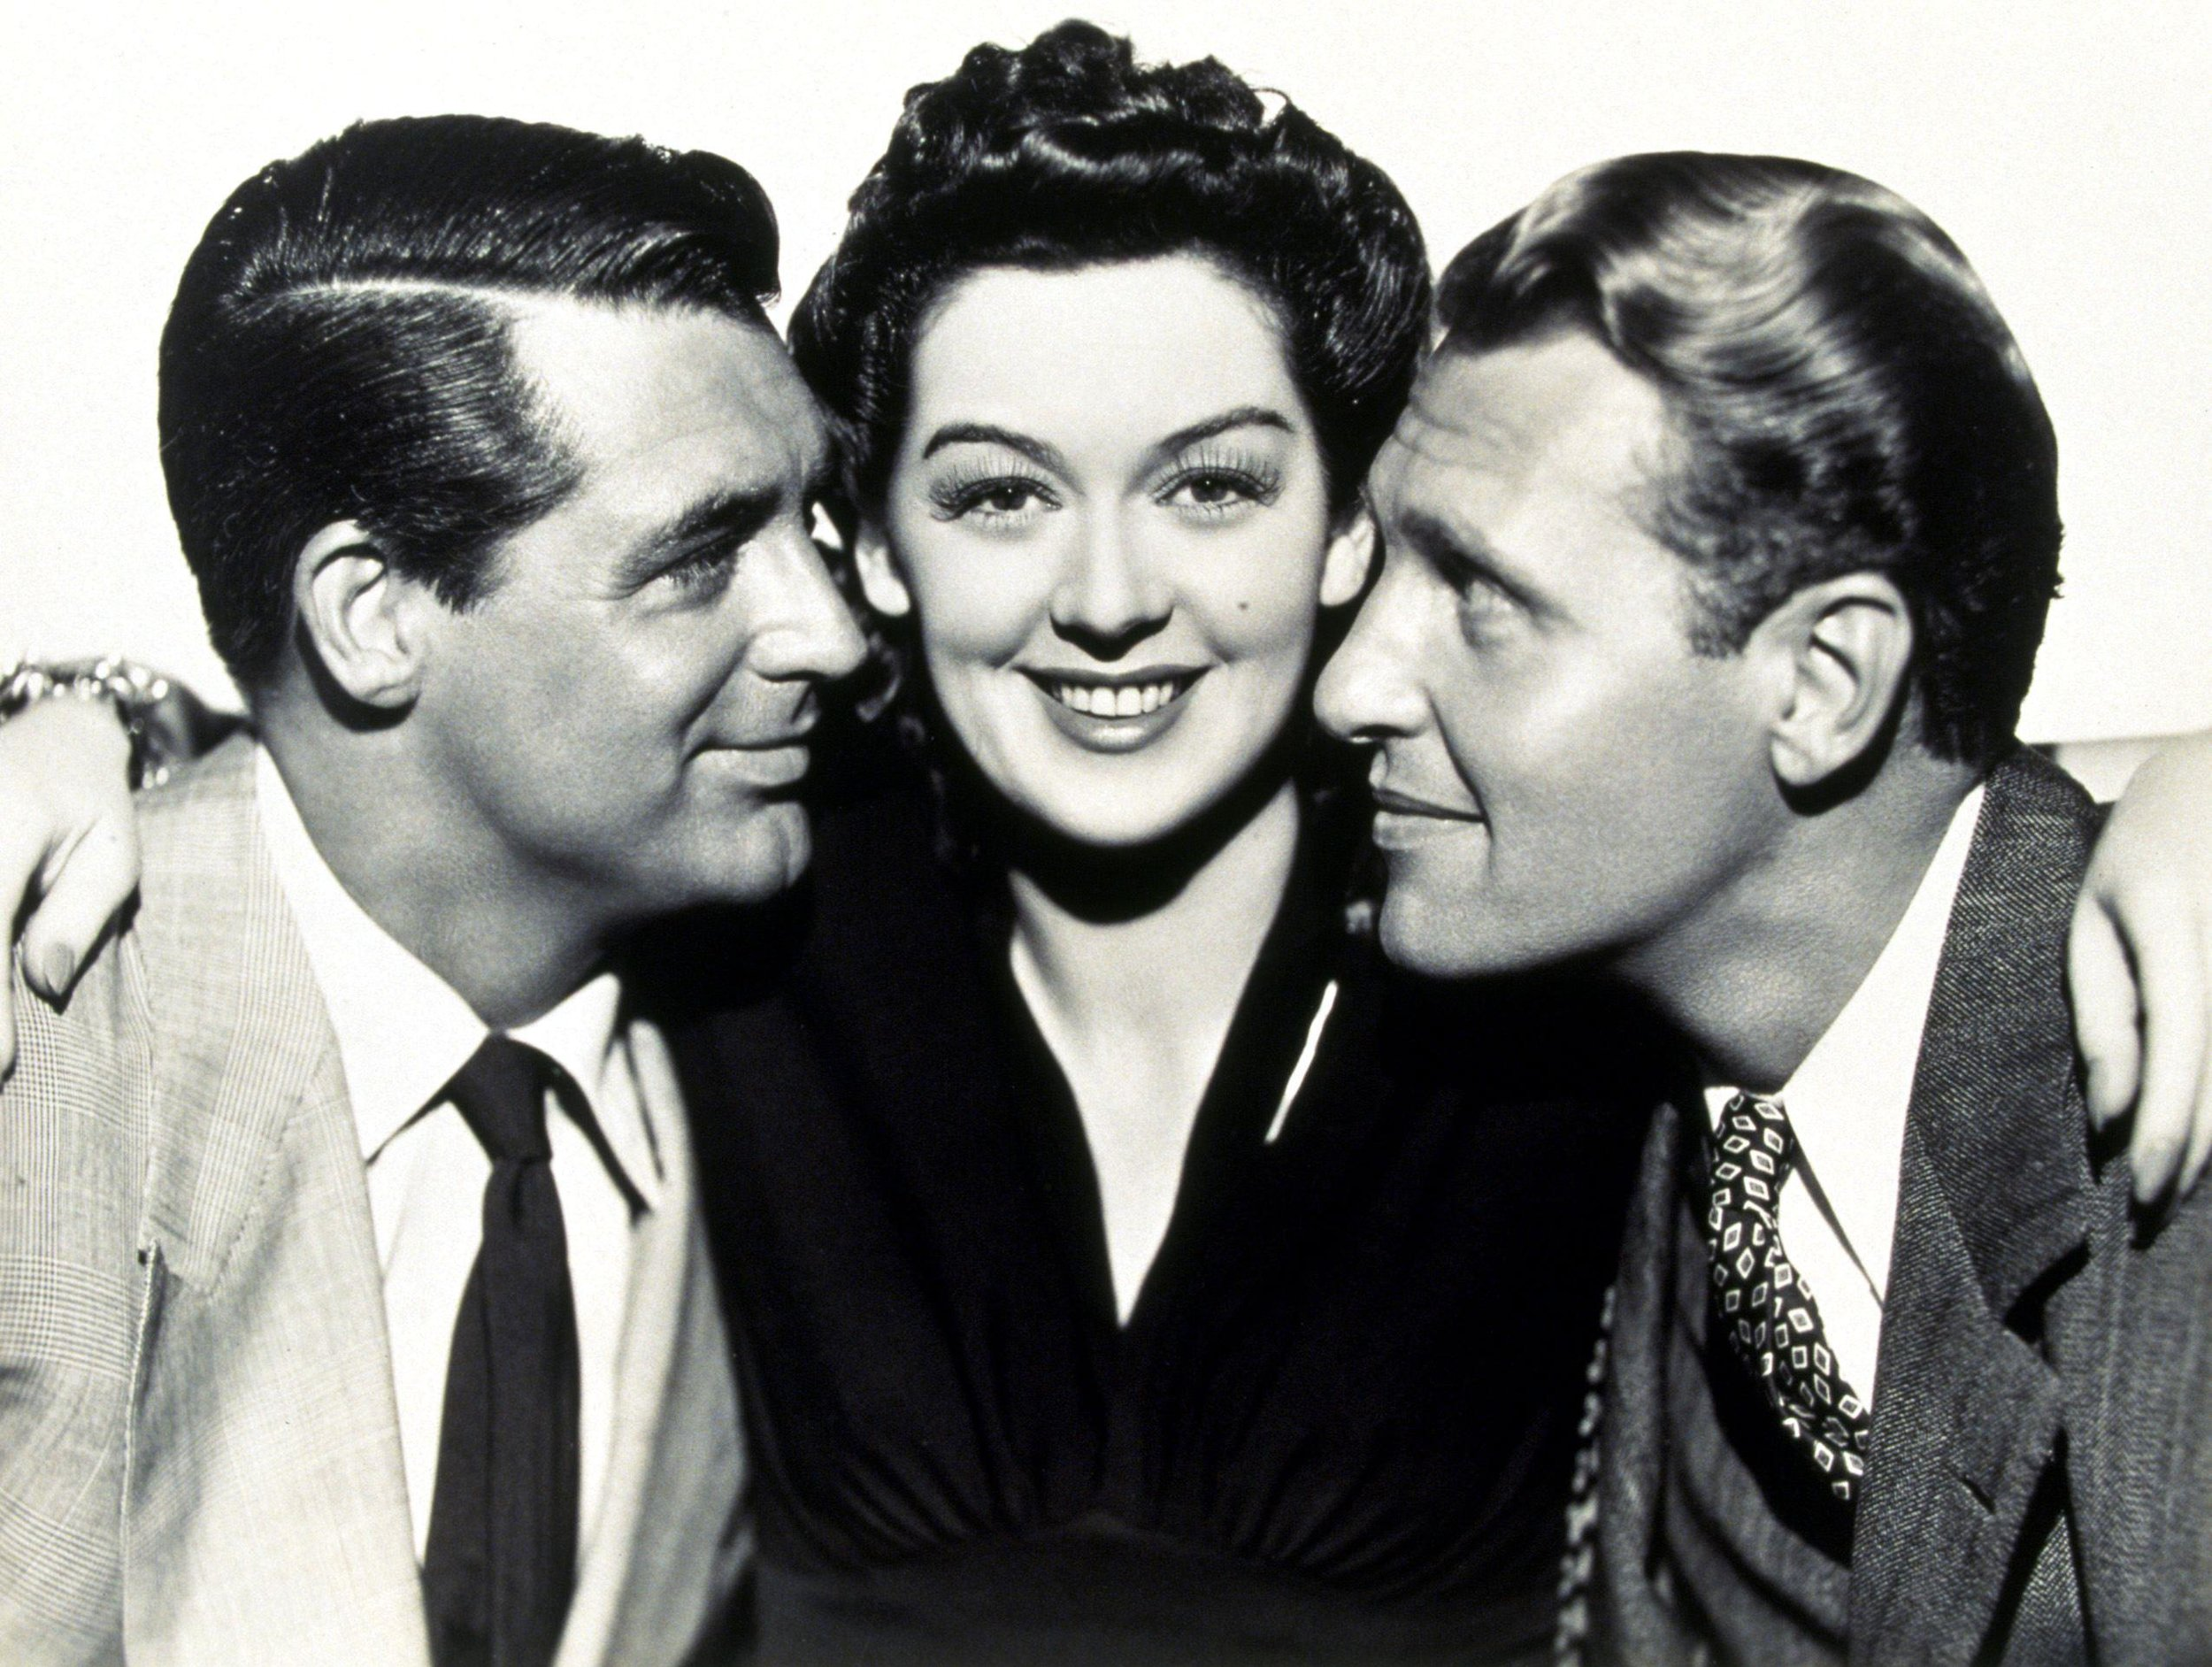 In His Girl Friday with Rosalind Russell and Ralph Bellamy